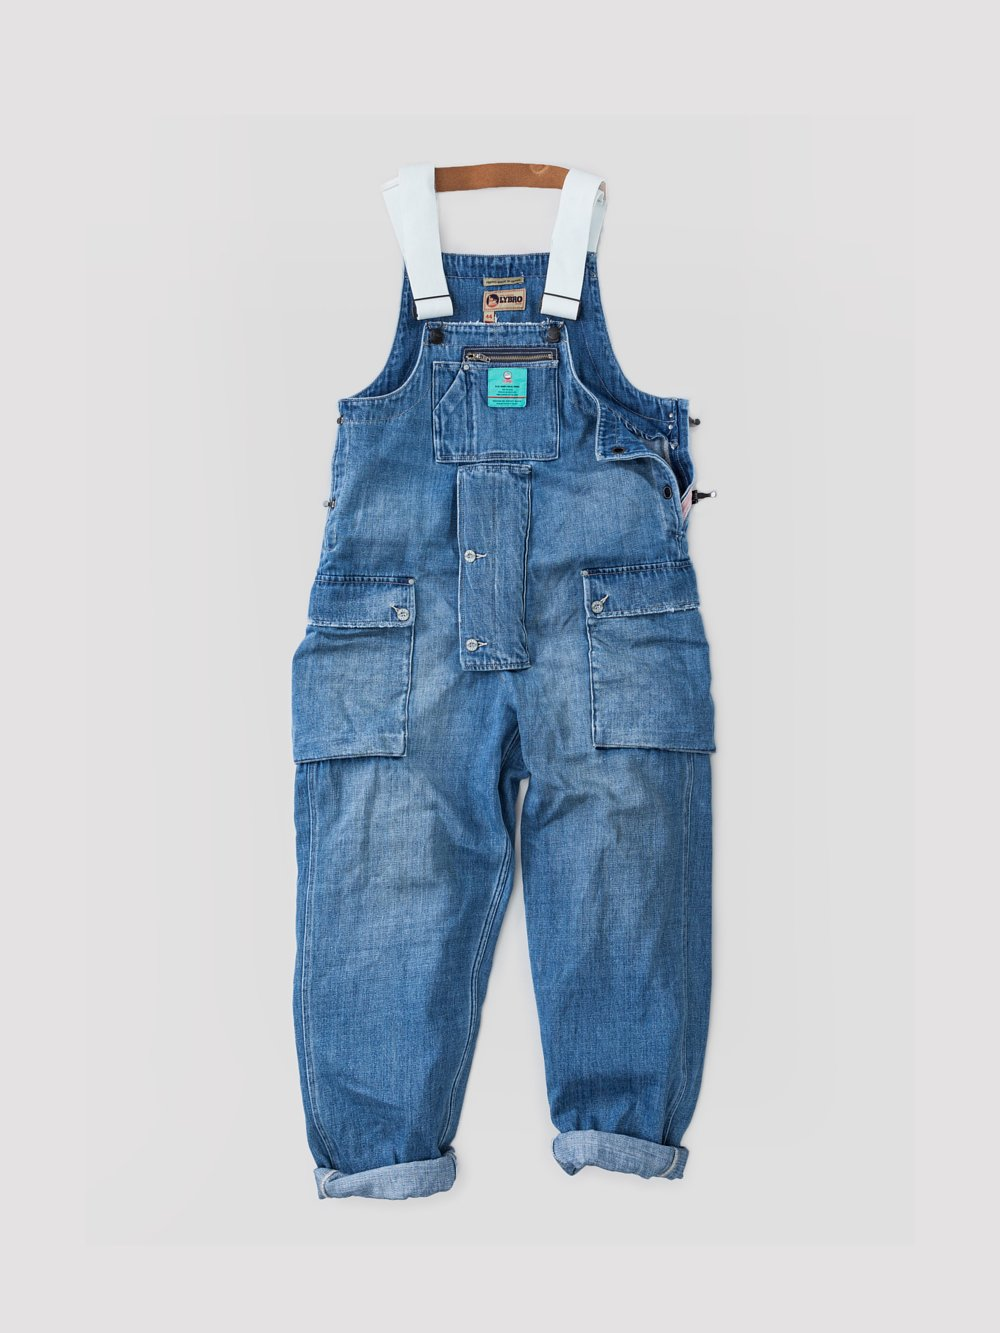 Nigel Cabourn P-52 NAVAL DUNGAREE DENIM